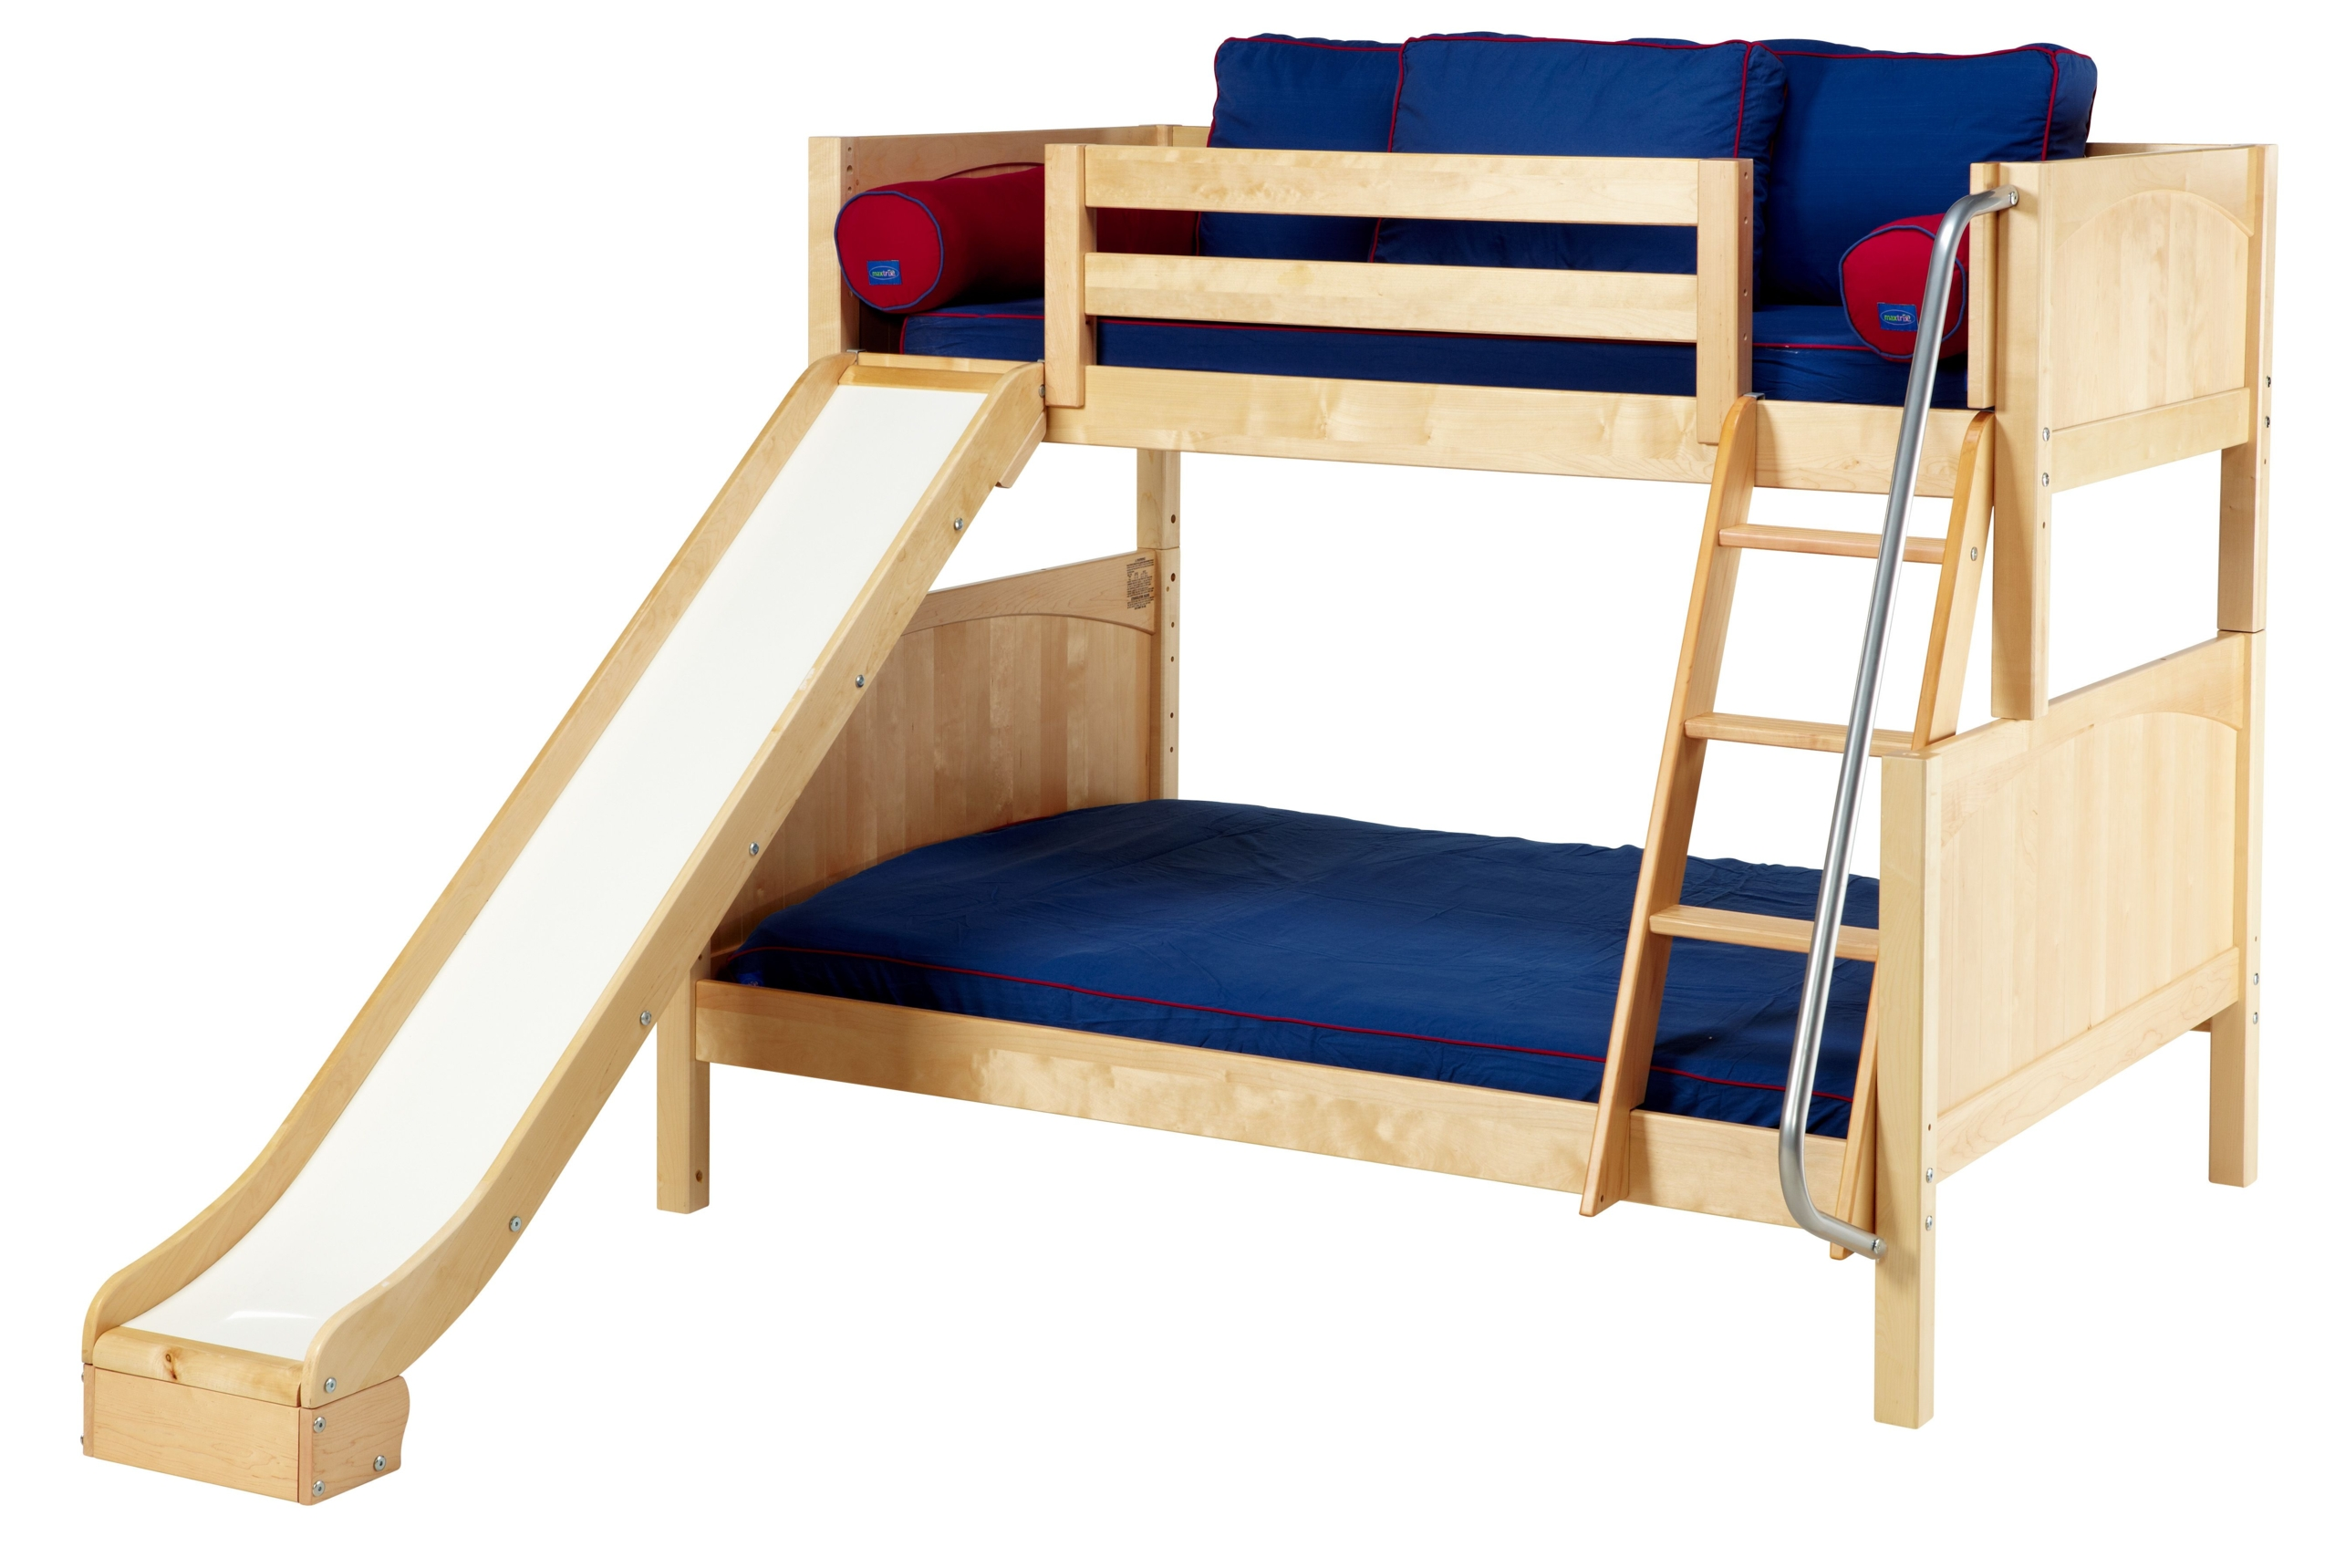 Bunk bed with slide and tent  sc 1 st  Foter & Bunk Bed With Slide And Tent - Foter